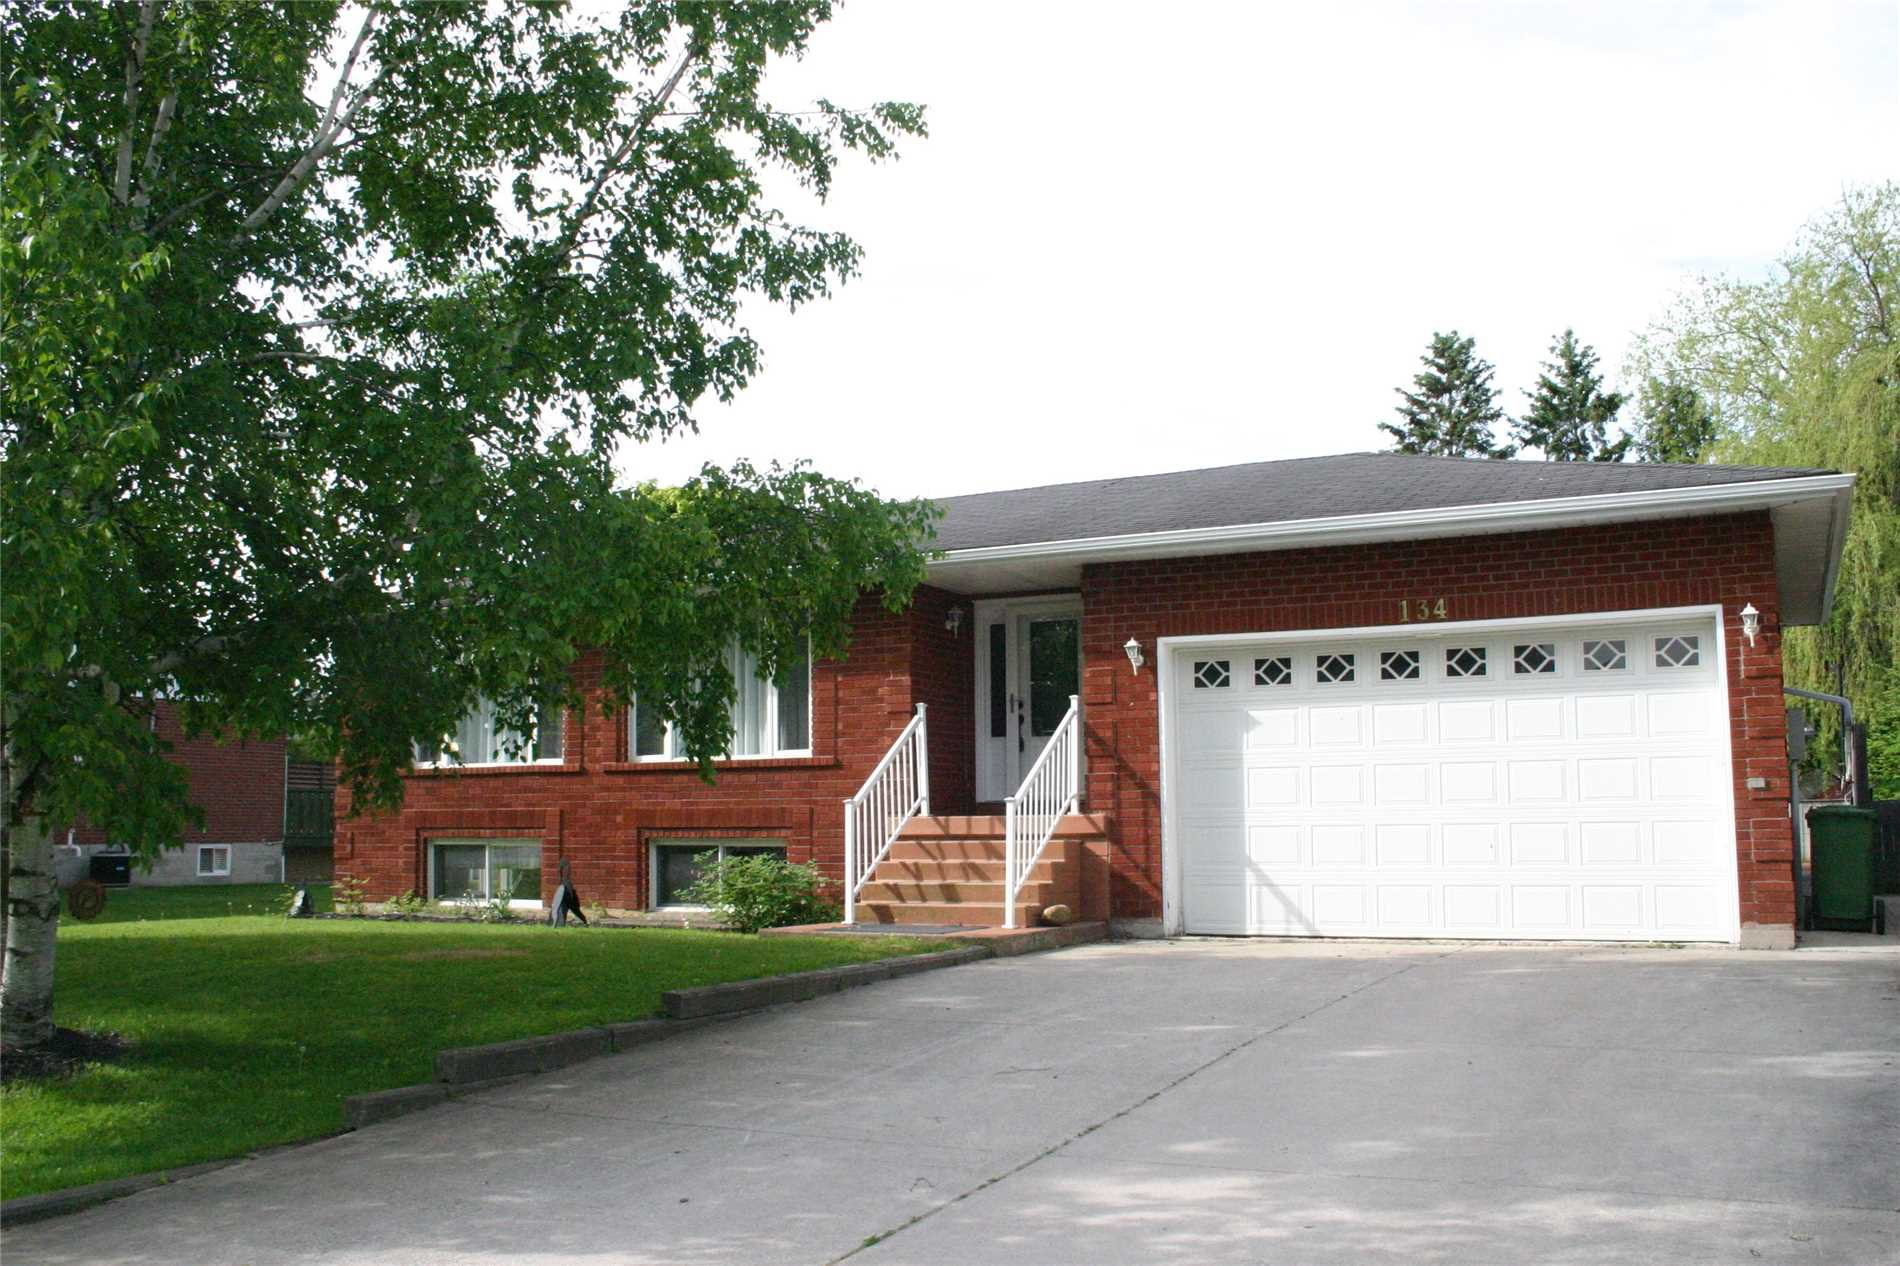 Main Photo: 134 N Osprey Street in Southgate: Dundalk House (Bungalow) for sale : MLS®# X4442887